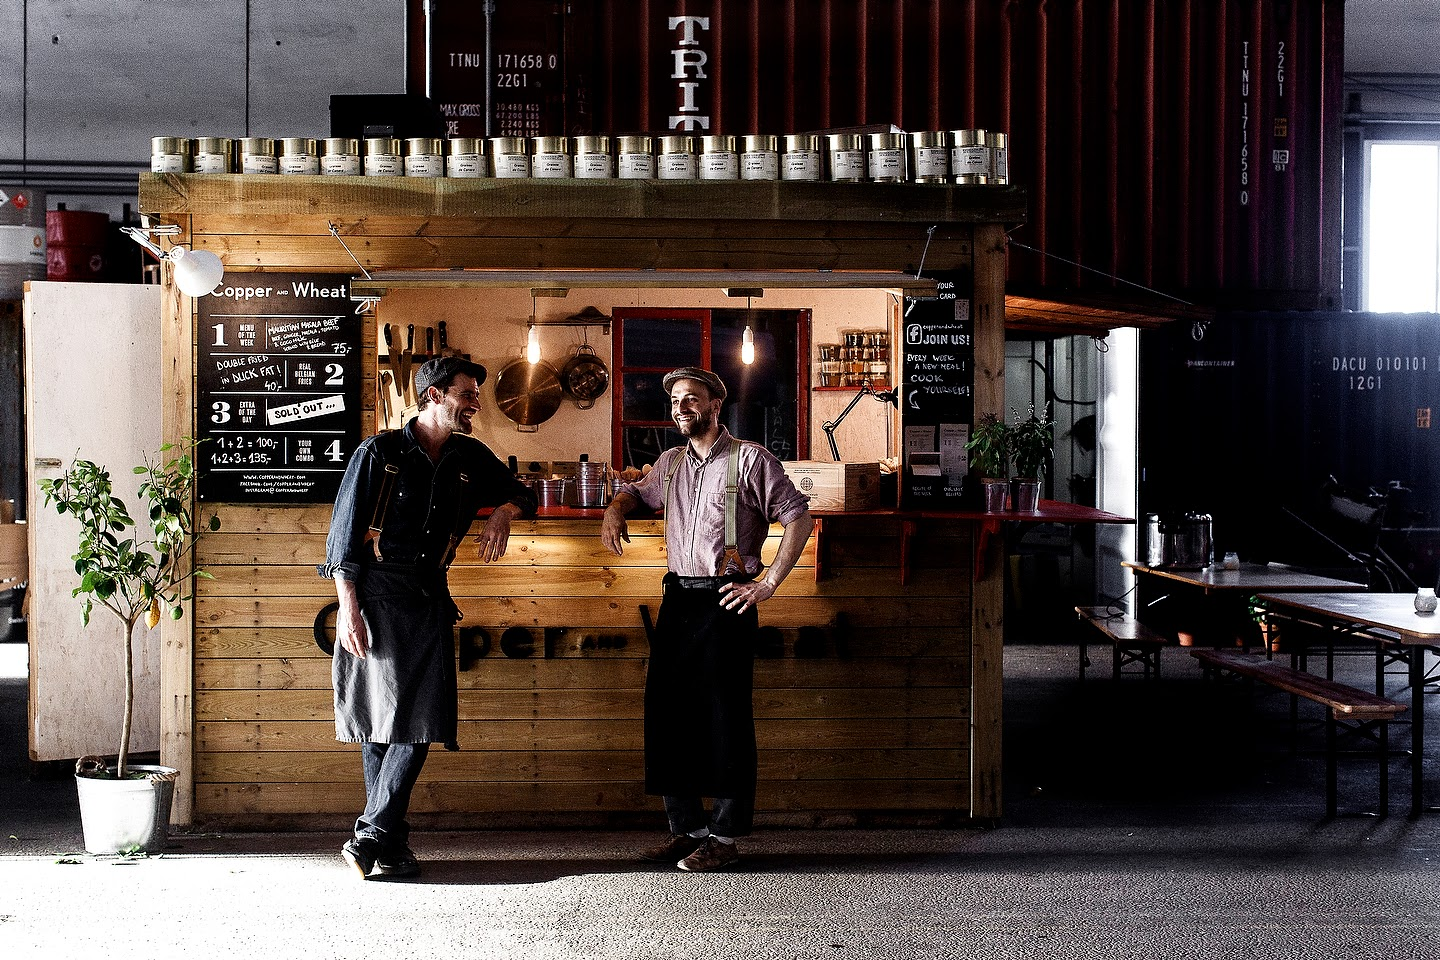 Copenhagen Eats: Copper and Wheat - Combining Modernity with ...